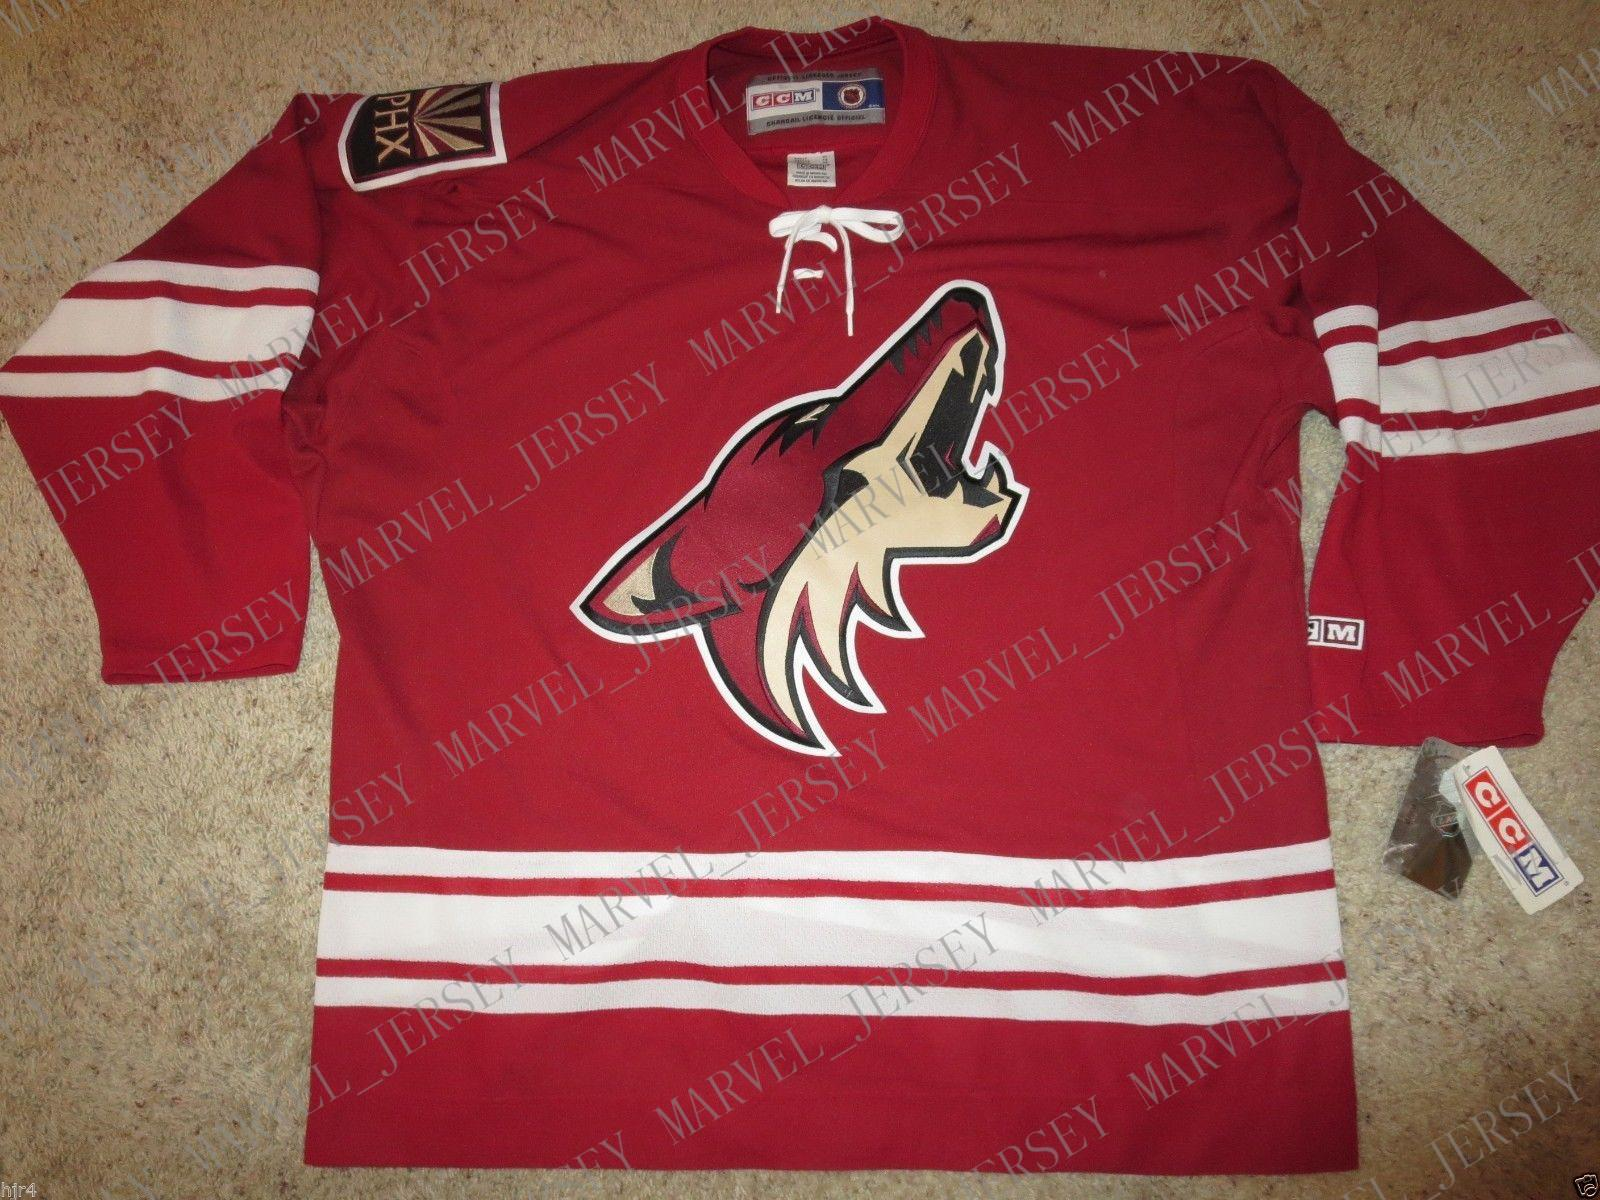 Cheap custom Arizona Coyotes #7 HAKES CCM Hockey Red Jersey Mens Personalized stitching jerseys